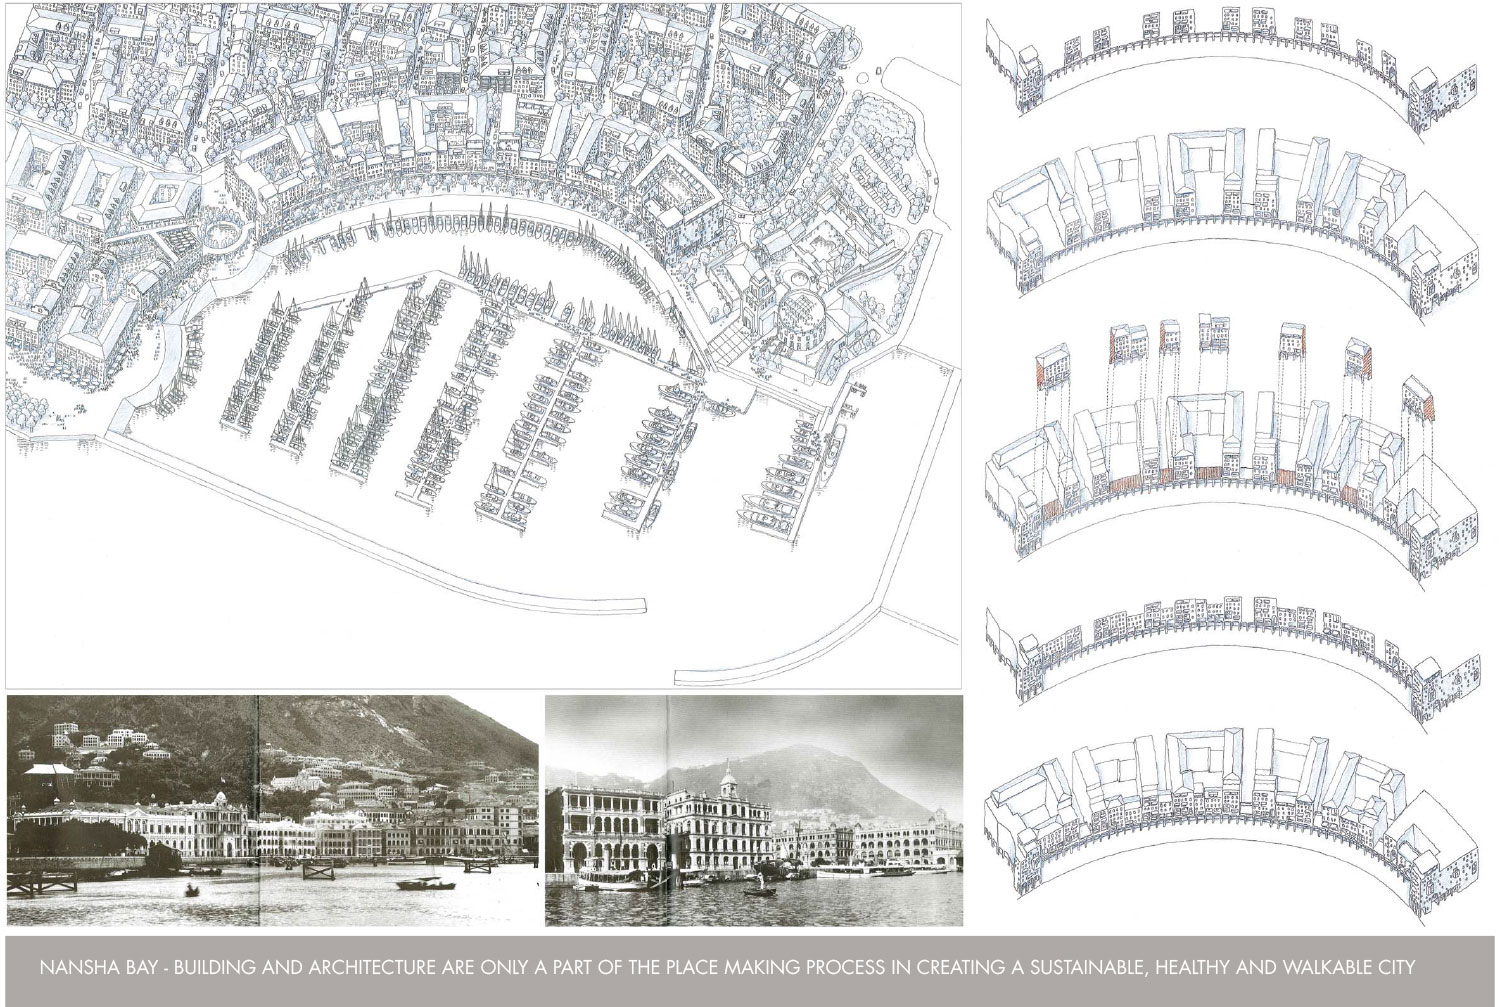 Richard Reid and Associates - Architects and Master Planners